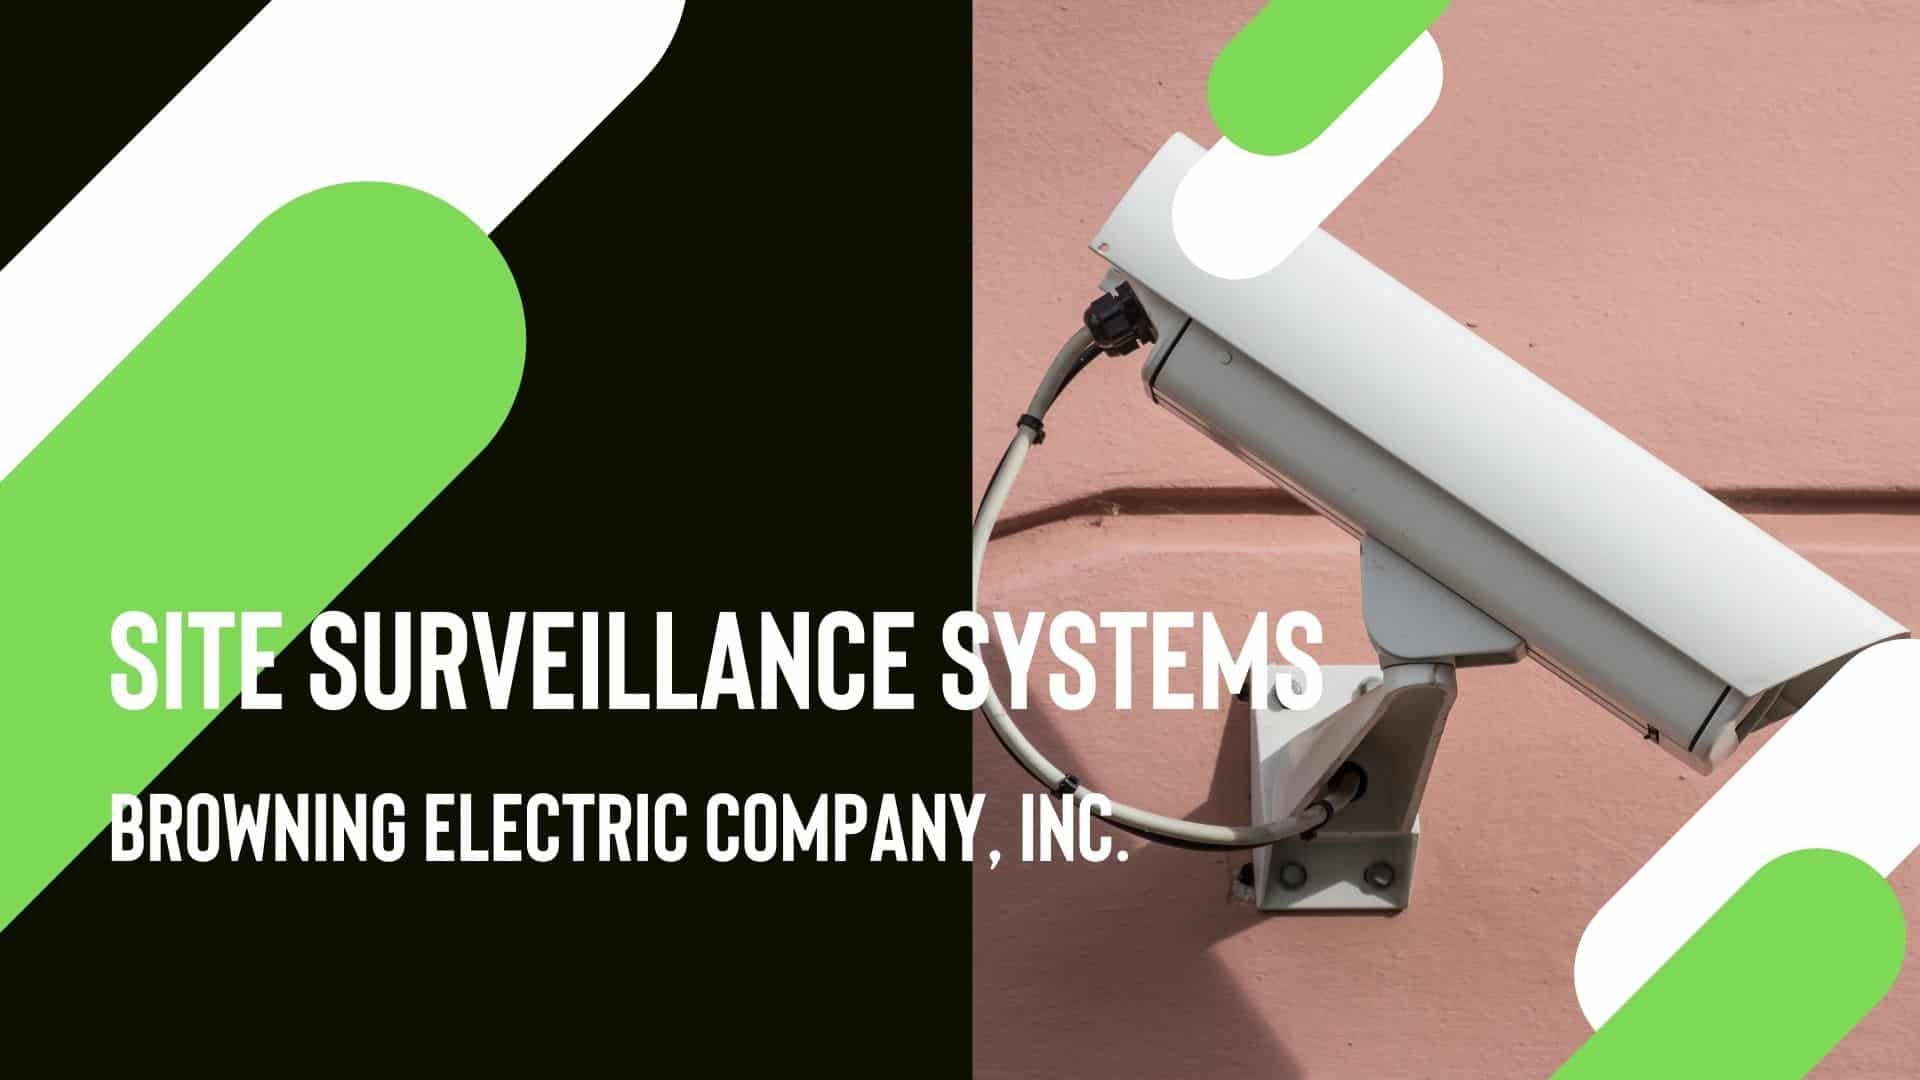 site surveillance systems featured image